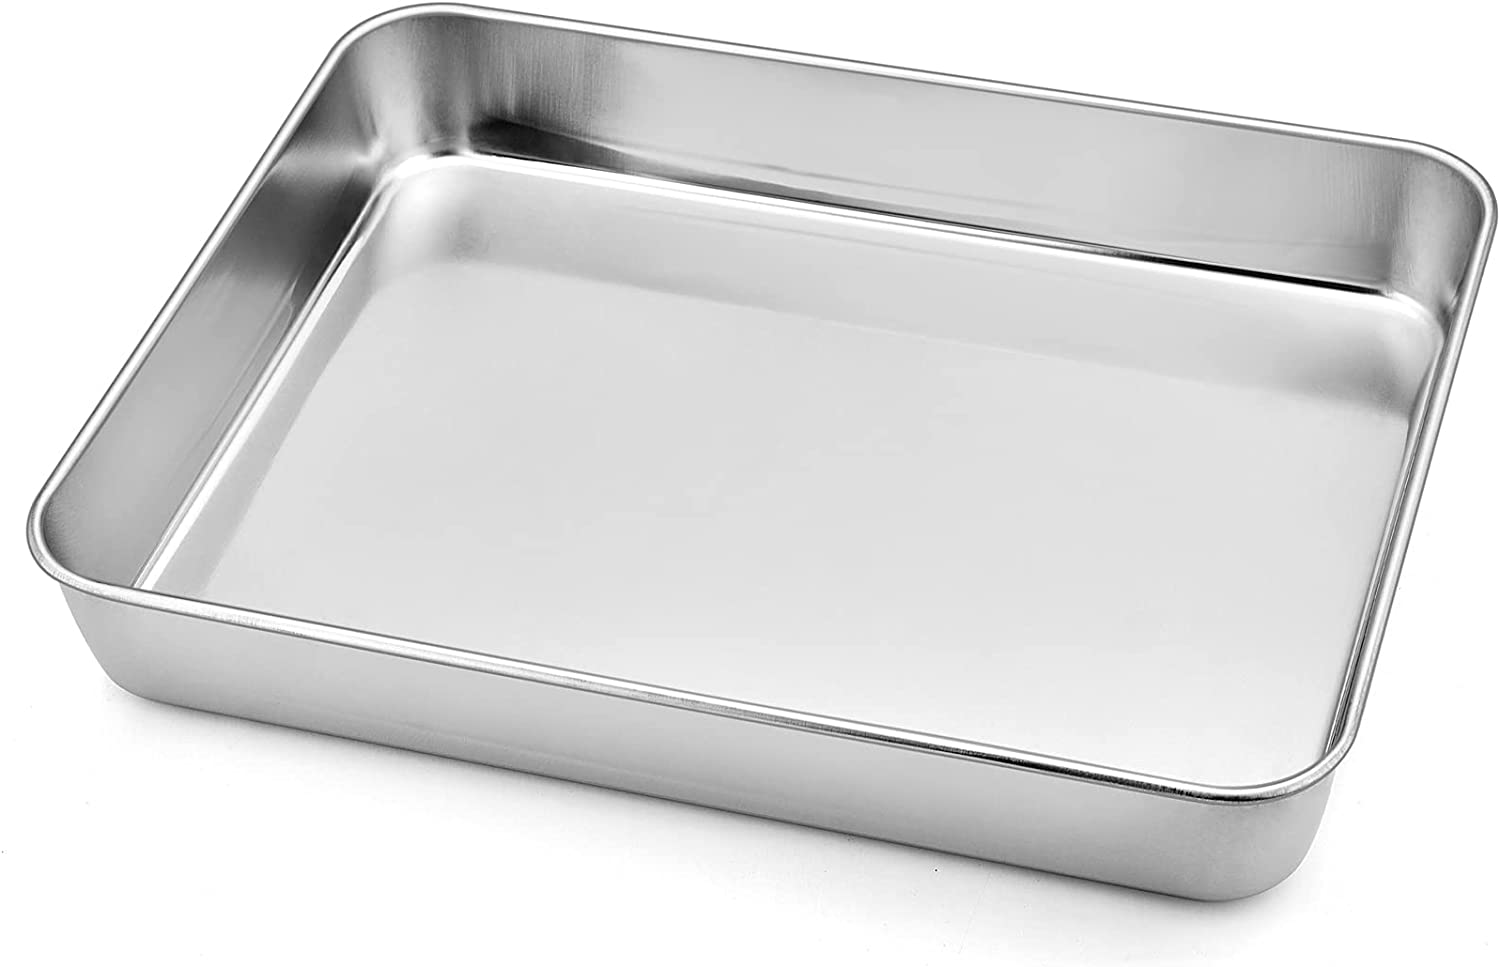 """Deep Toaster Oven Tray Pan, P&P CHEF Stainless Steel Small Rectangular Baking Pan, Size 9.3""""x7""""x1.75"""", Brush Finished & Easy Clean, Non Toxic & Heavy Duty"""